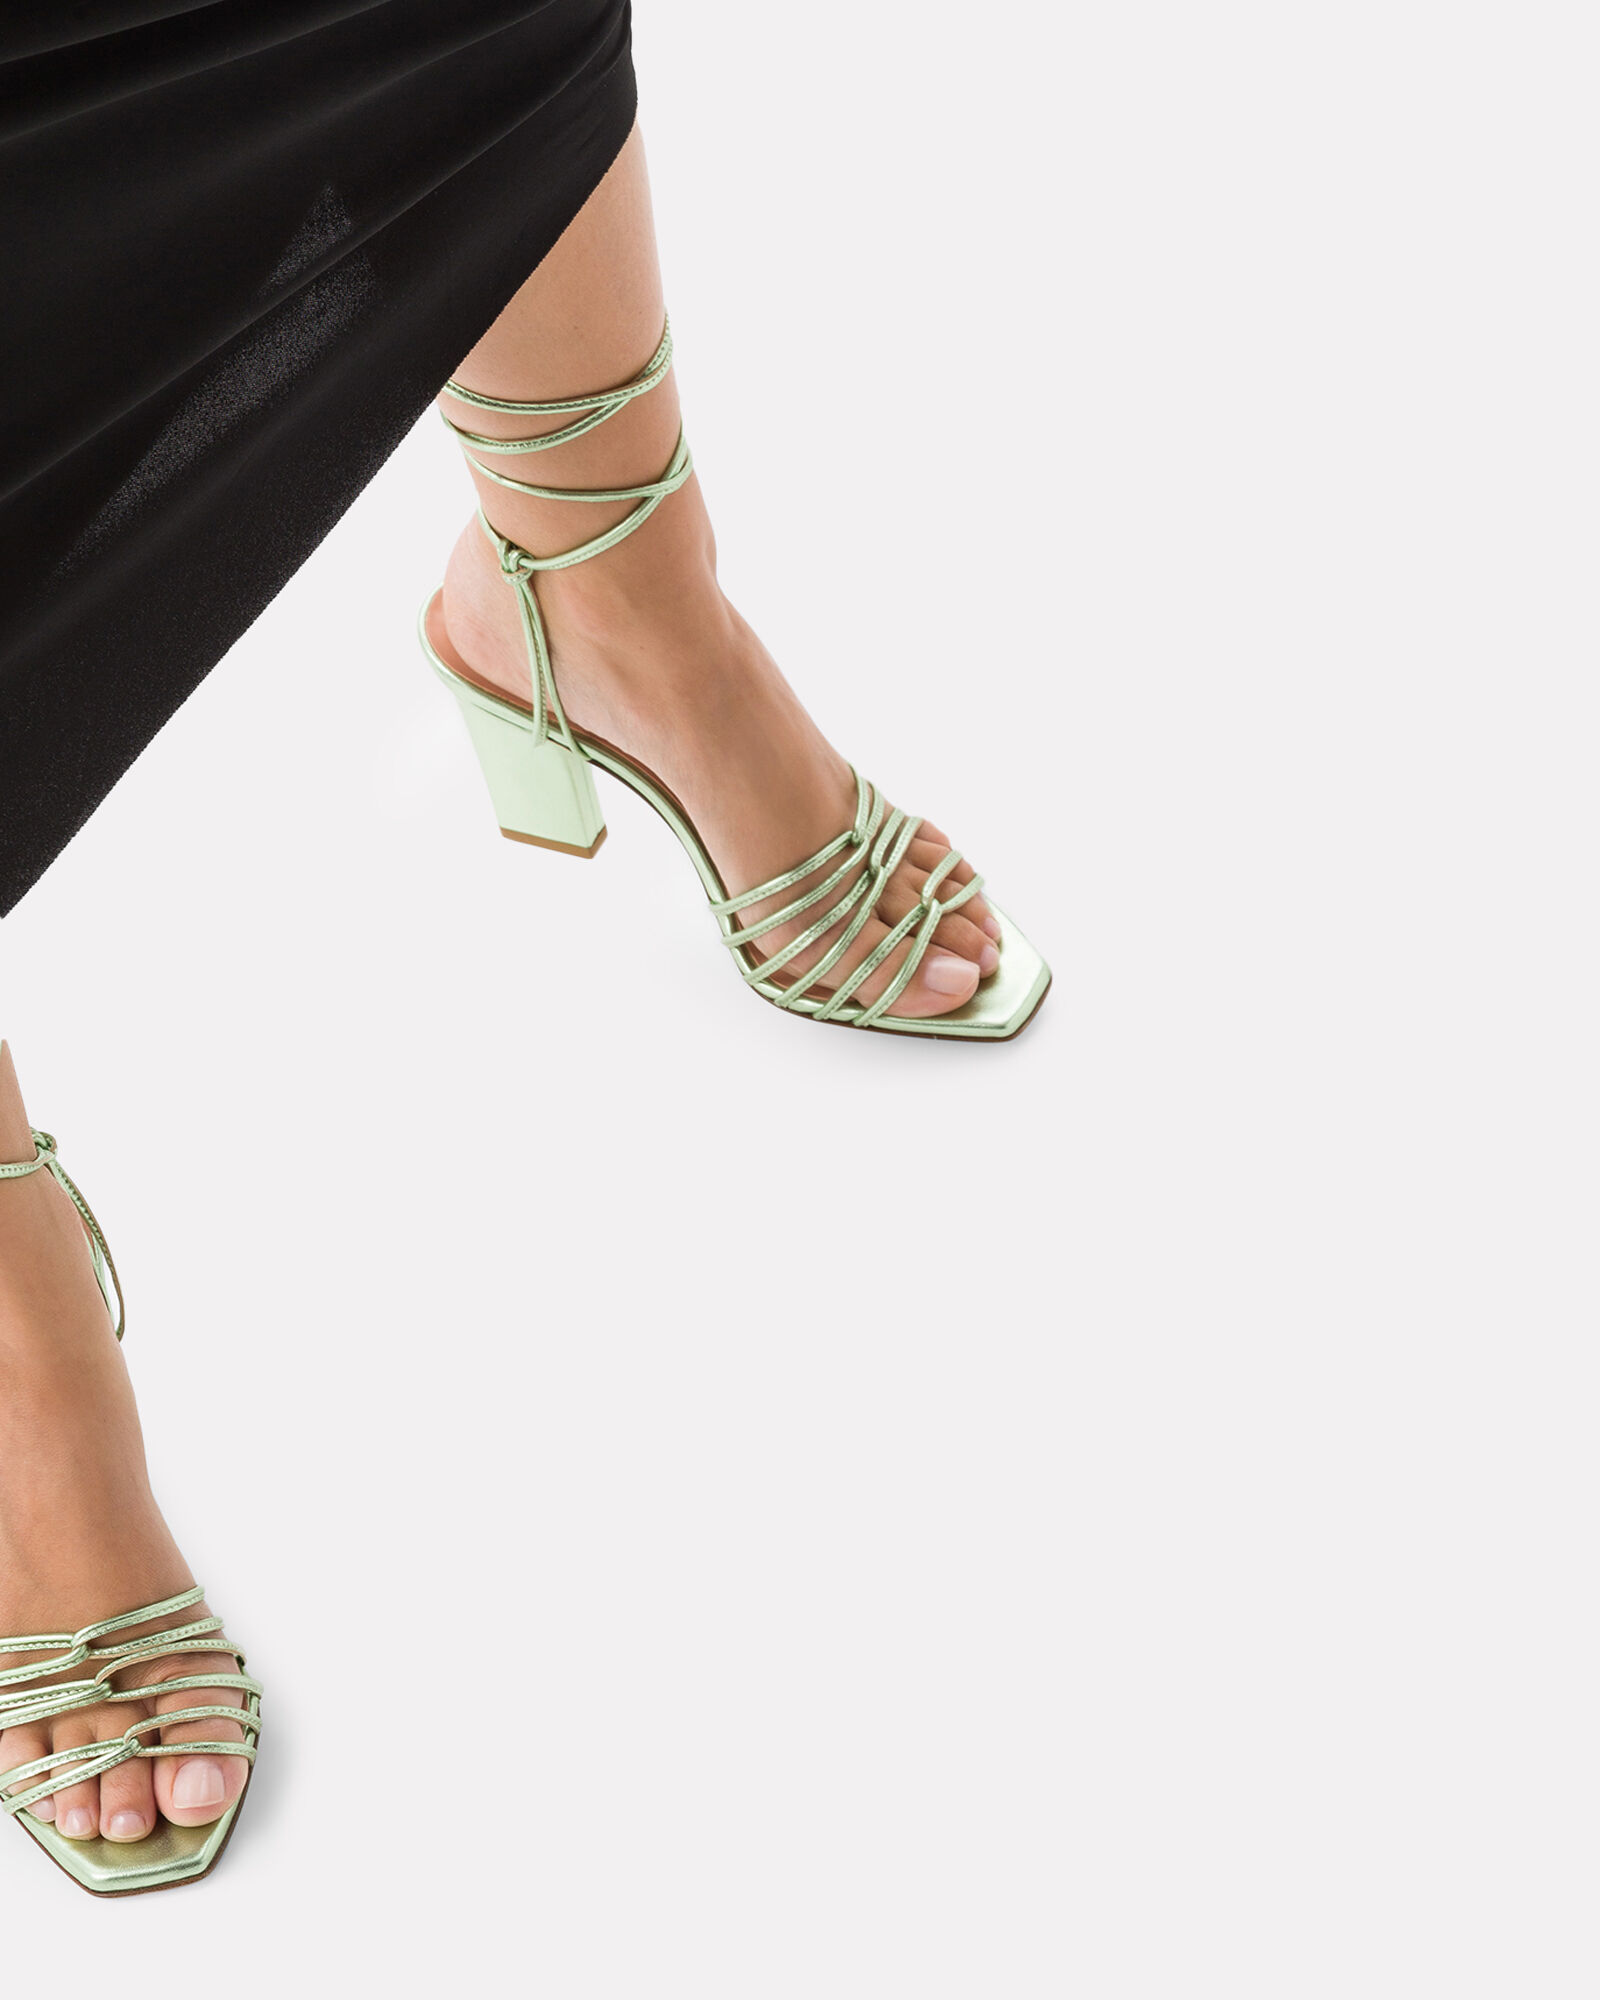 Daisy Strappy Leather Sandals, GREEN, hi-res